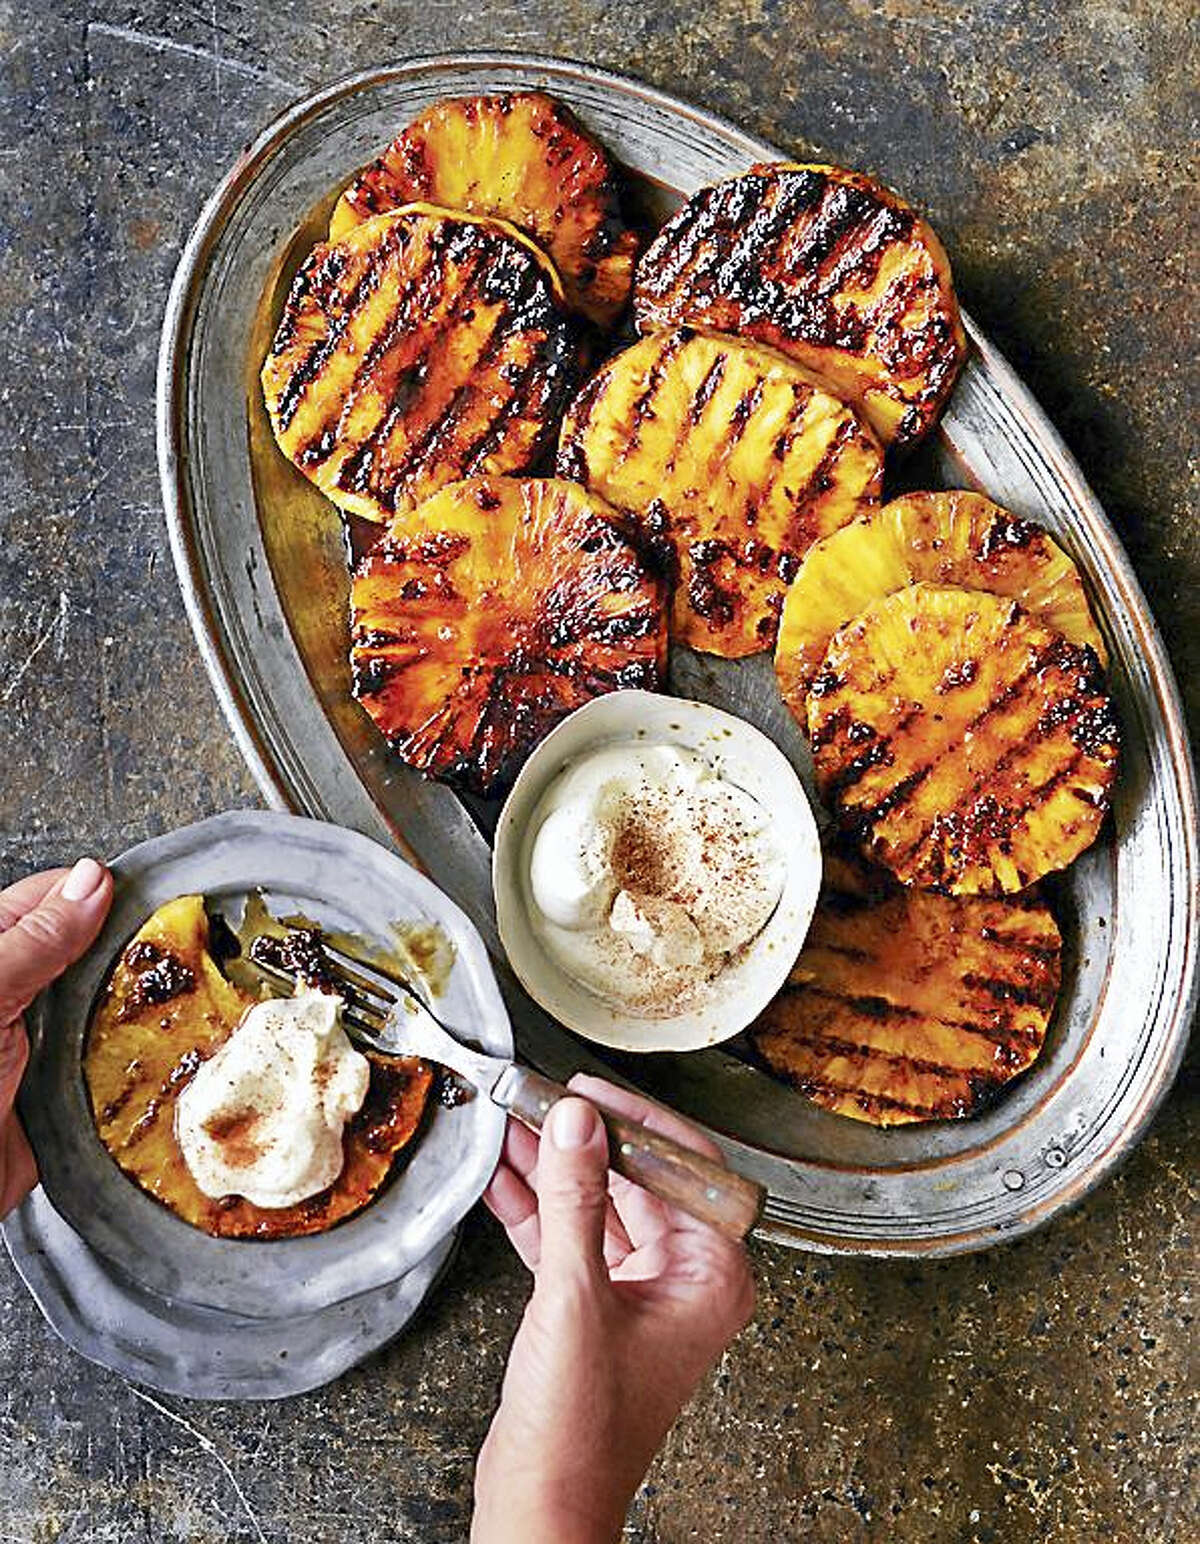 Spice-grilled pineapple with smoky whipped cream